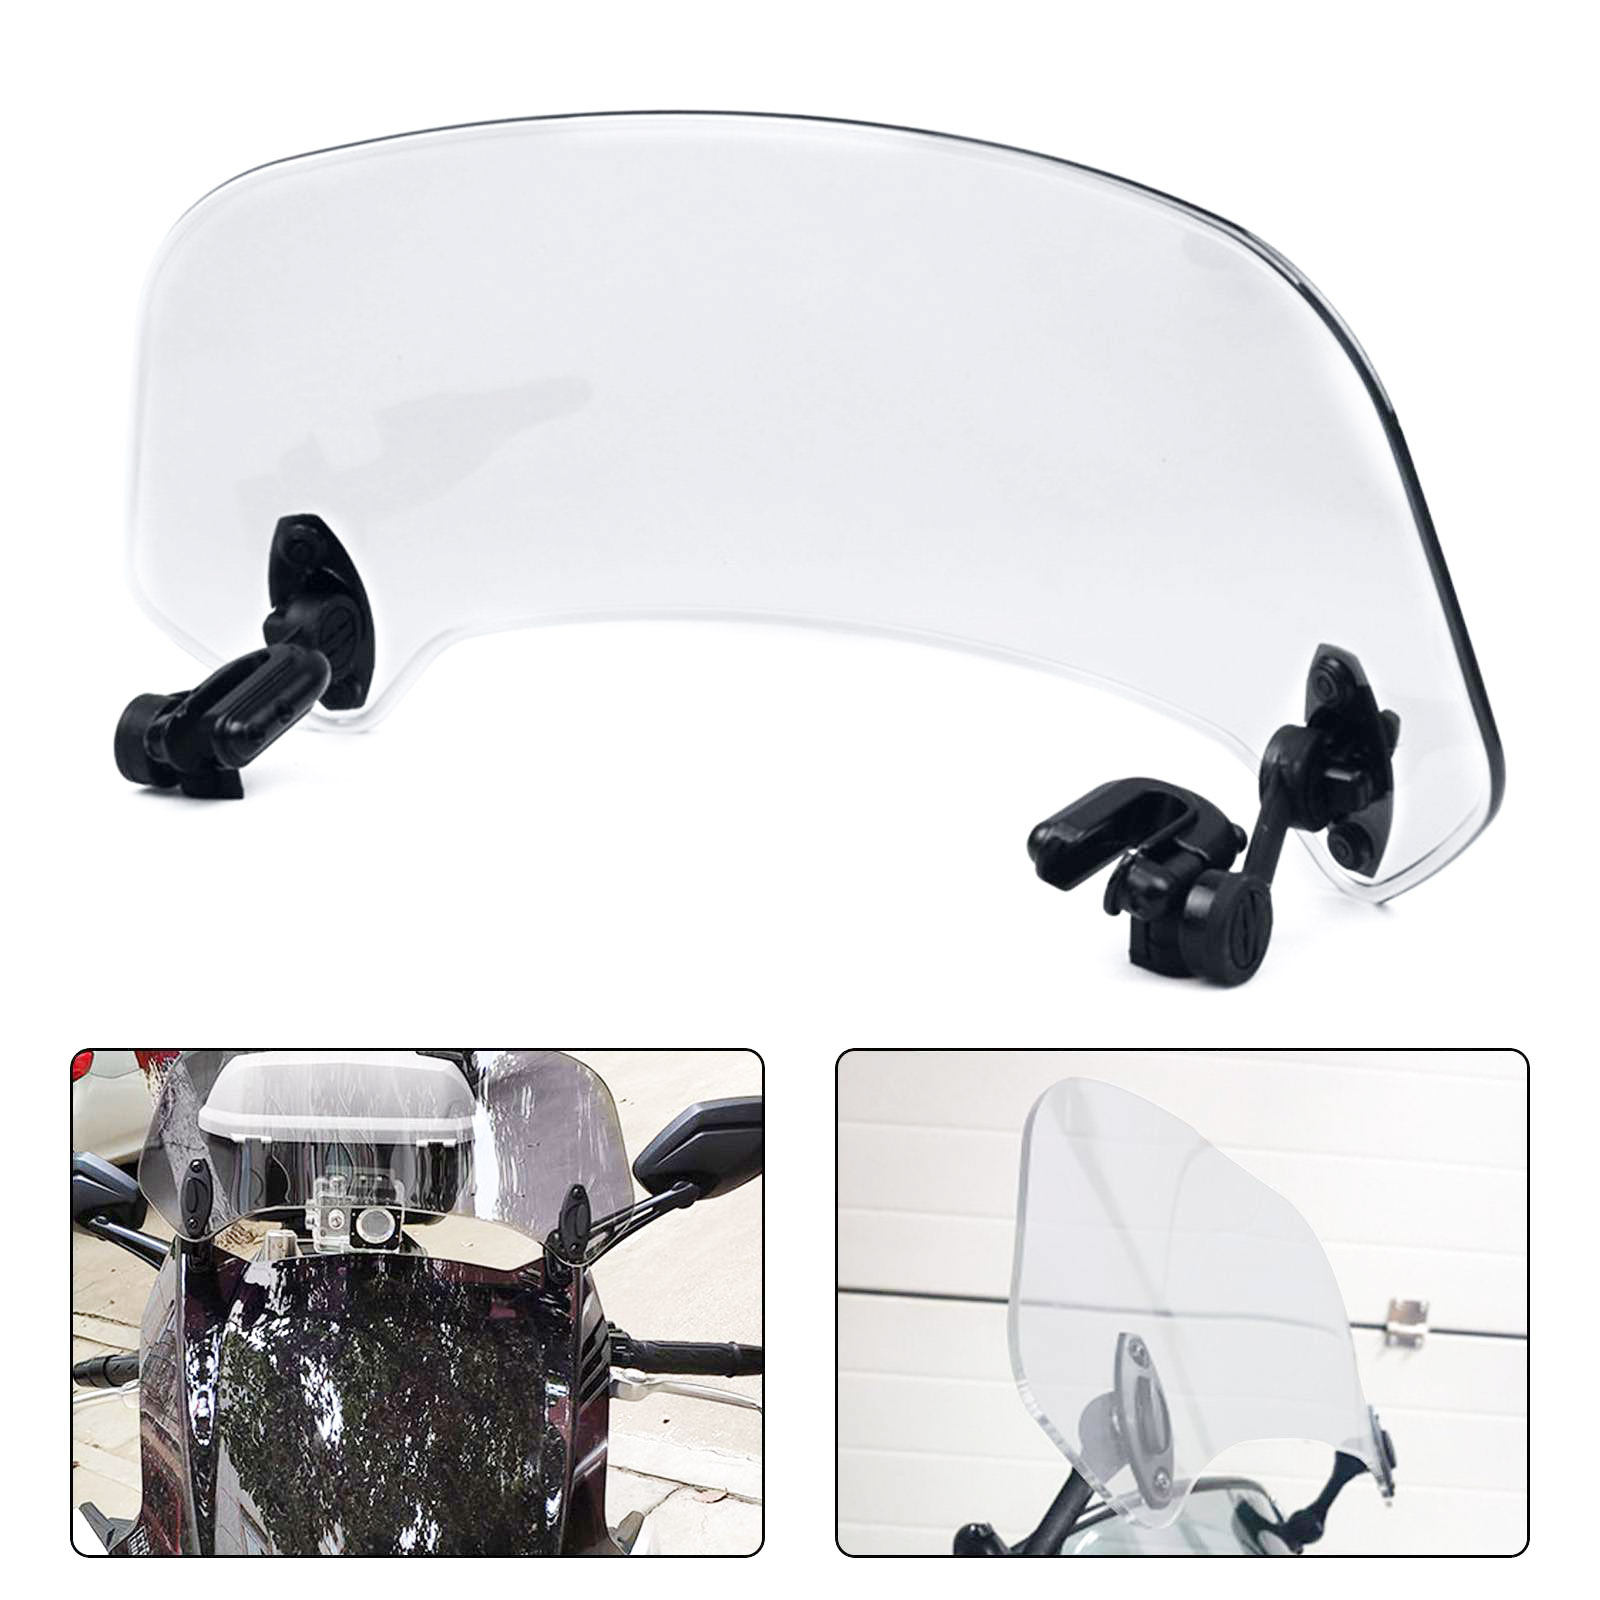 Motorcycle Adjustable Clip On Extension Windshield Wind Deflector w//Mounting Clip Kit